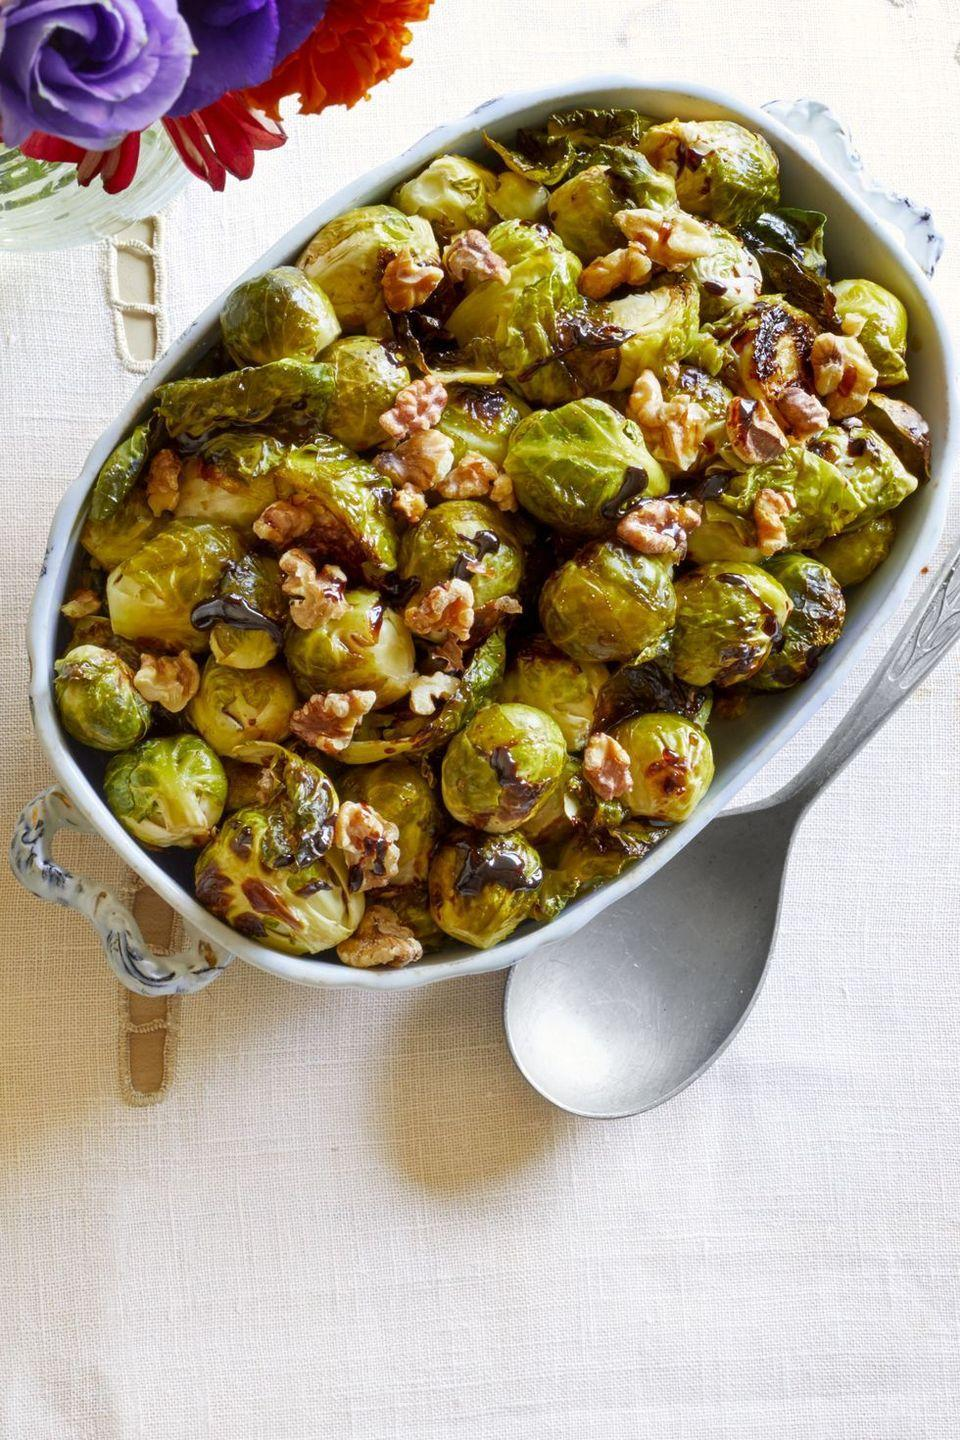 """<p>Add something green to your menu with this tangy, nutty Brussels sprouts dish. Even your kids will ask for seconds! </p><p><a href=""""https://www.thepioneerwoman.com/food-cooking/recipes/a33249425/brussels-sprouts-with-balsamic-reduction-walnuts-recipe/"""" rel=""""nofollow noopener"""" target=""""_blank"""" data-ylk=""""slk:Get Ree's recipe."""" class=""""link rapid-noclick-resp""""><strong>Get Ree's recipe.</strong></a></p>"""